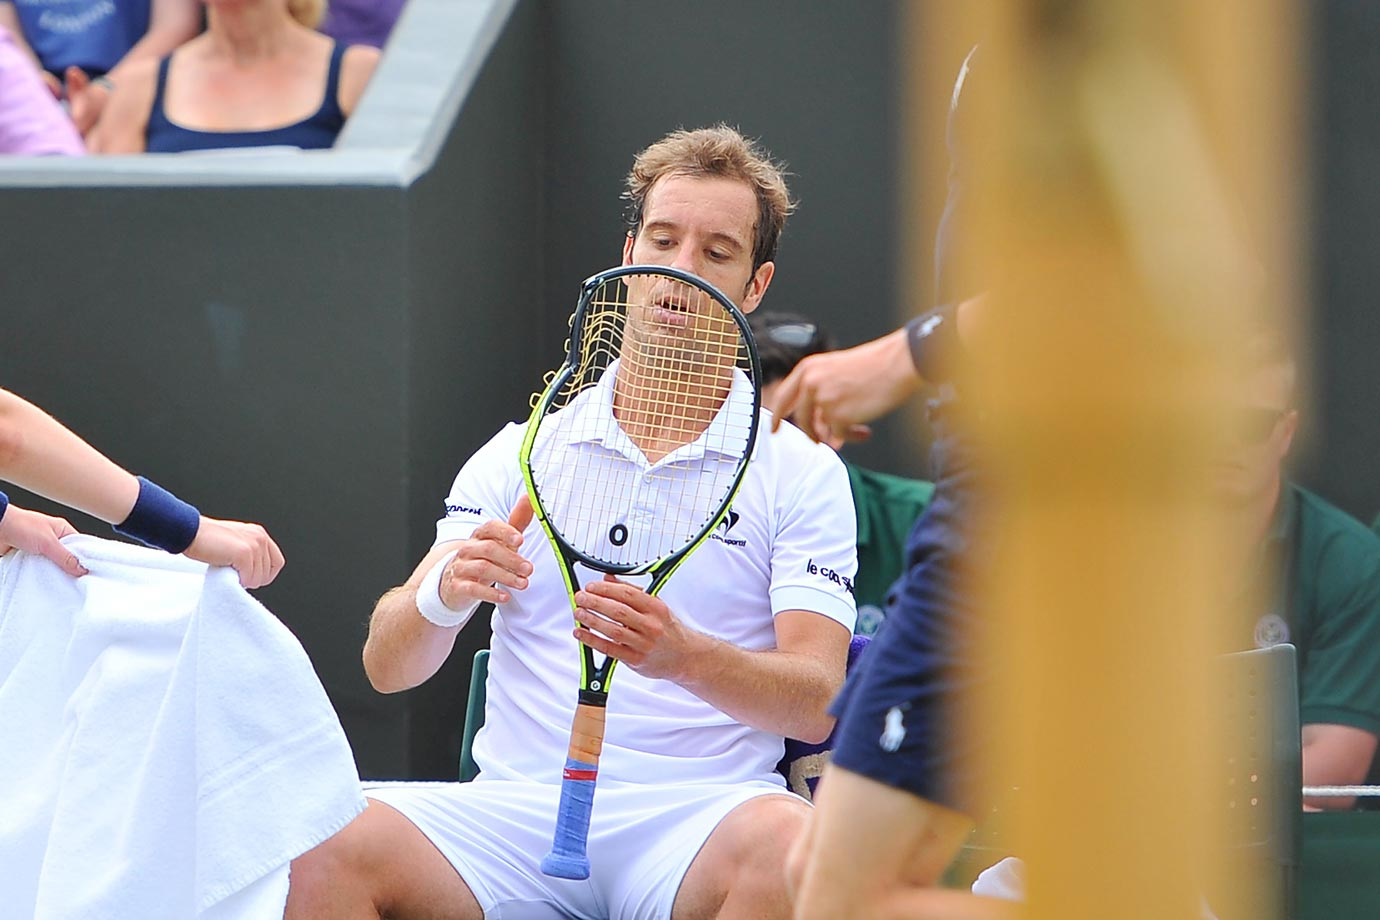 Richard Gasquet lost his temper for a bit but ended up beating Nick Kyrgios at Wimbledon, three sets to one.